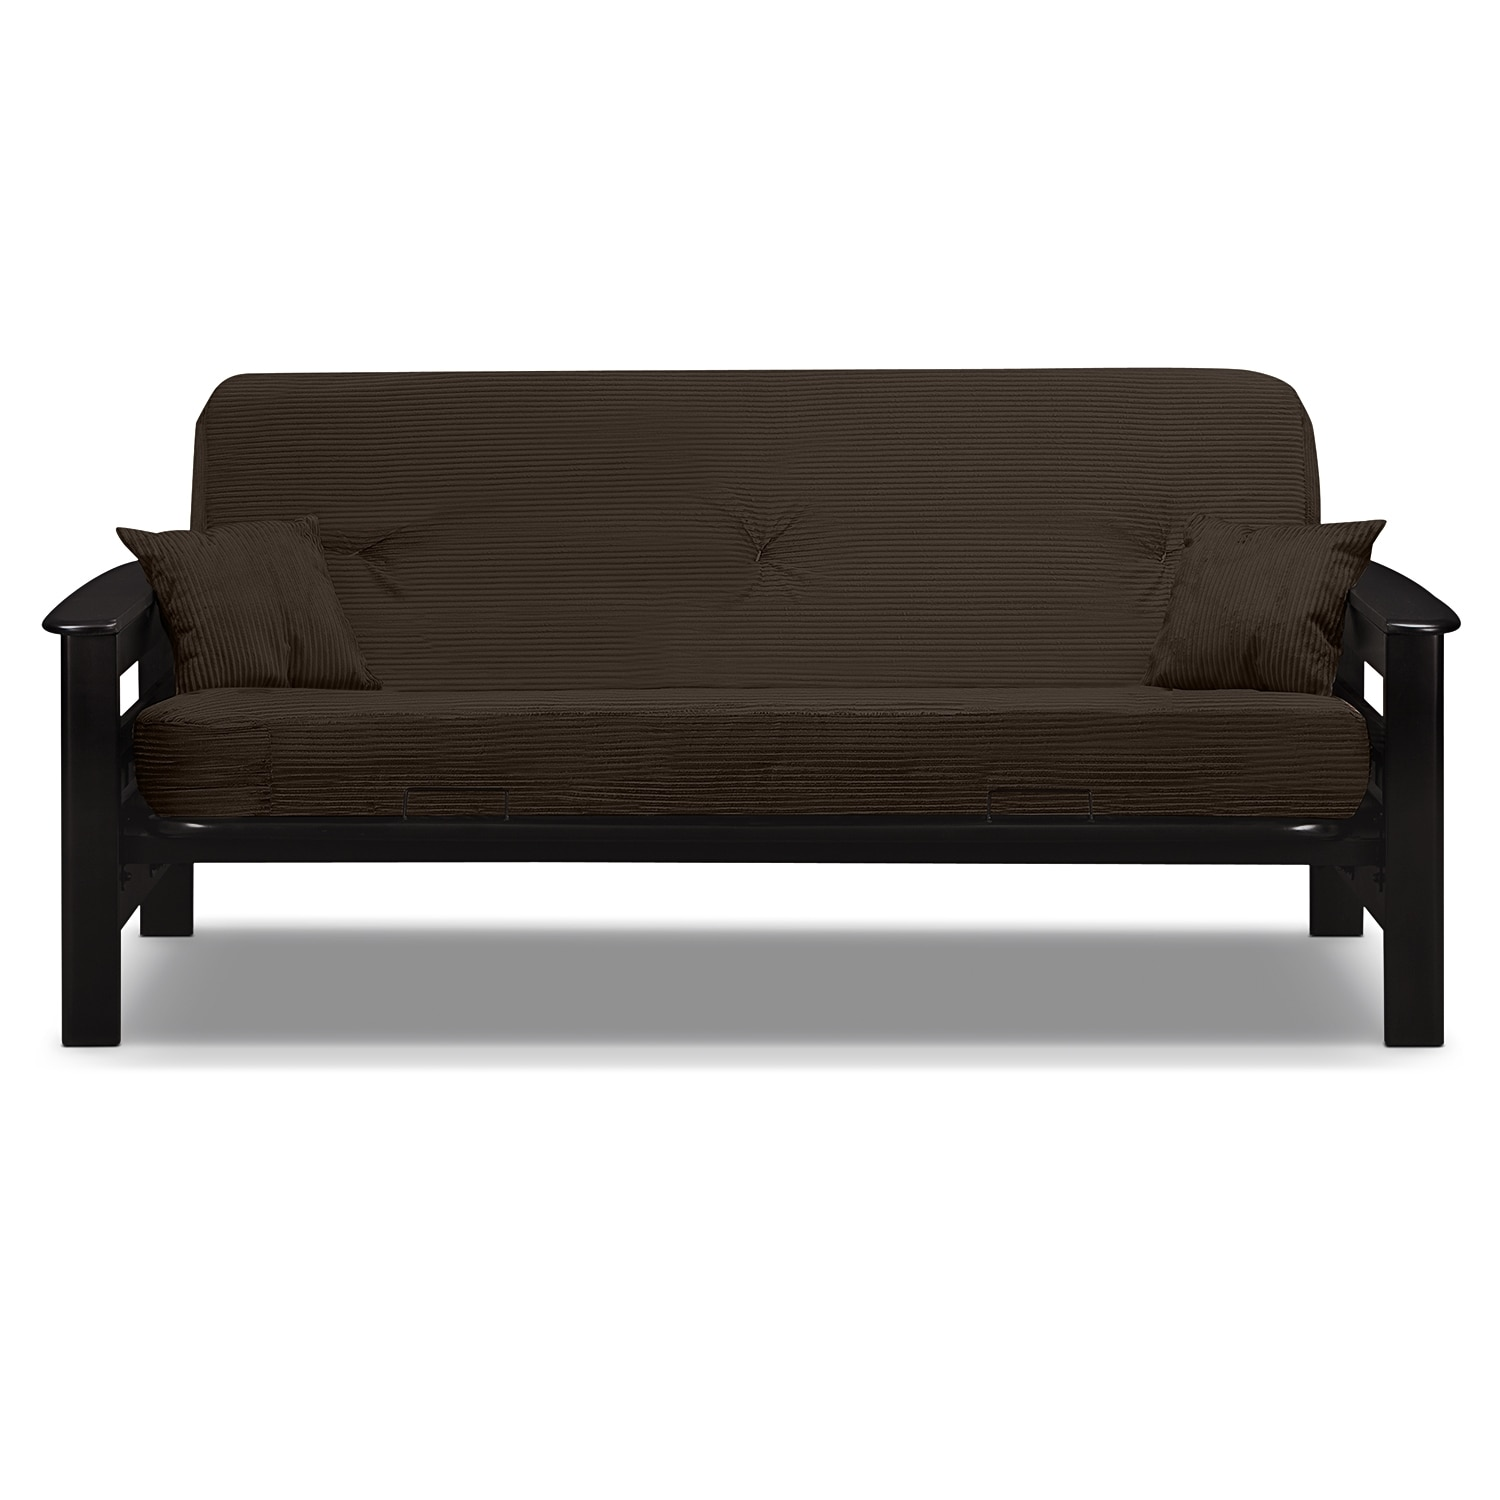 value city furniture mattress futon mattress tampa 17692